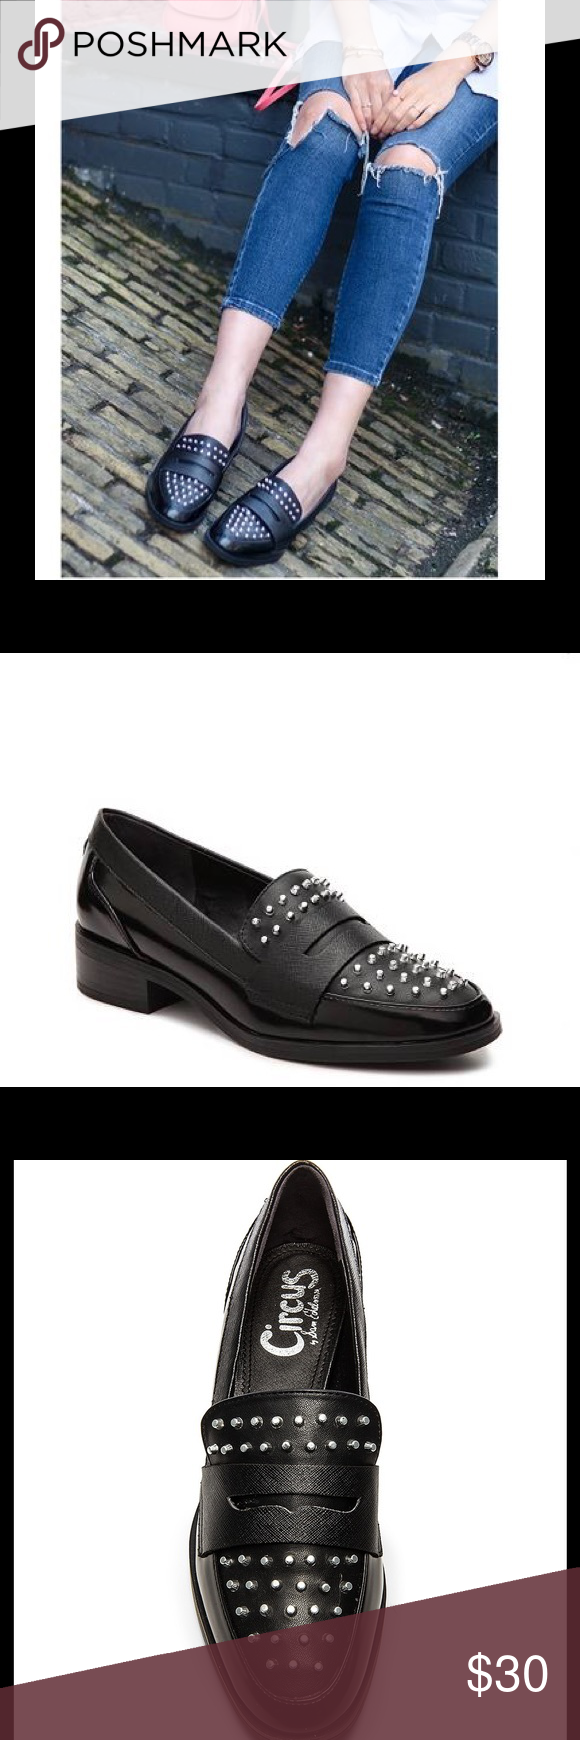 6569021e1c76b2 Circus by Sam Edelman LALI Studded loafer NWOT. Studded loafer by Circus  Sam Edelman. Style  LALI. Size  38. Synthetic leather with studded details  for an ...